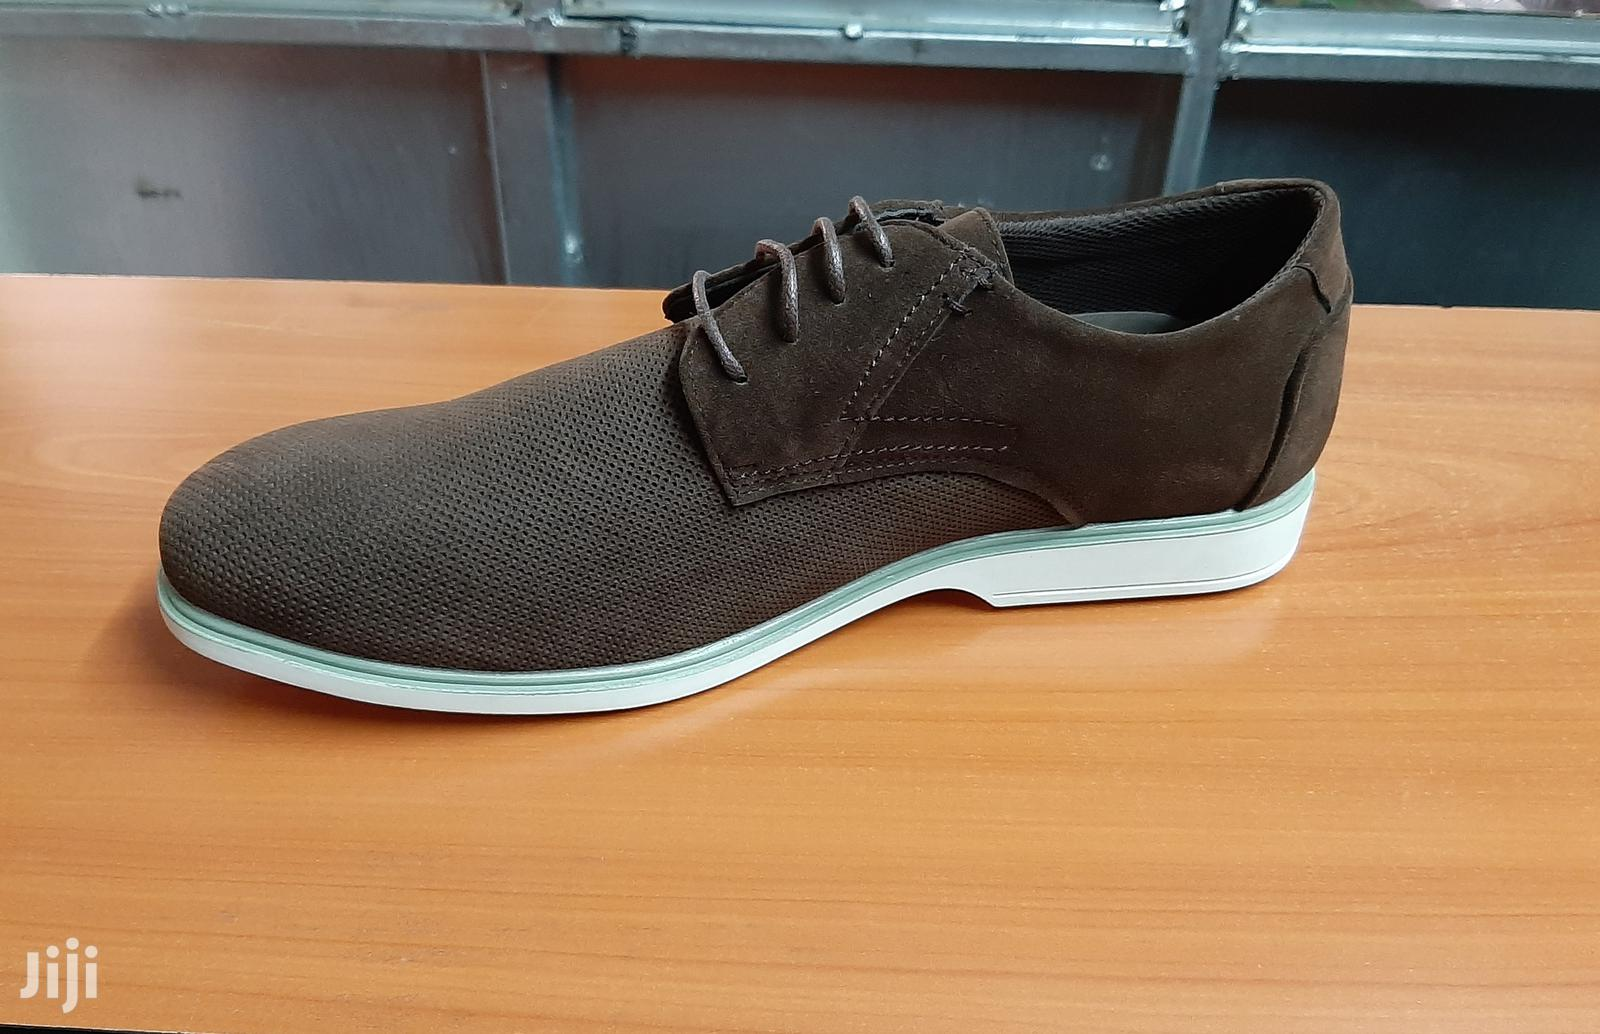 Italy Suede Leather Men Shoes Oxford Casual Classic Sneakers-Brown | Shoes for sale in Nairobi Central, Nairobi, Kenya